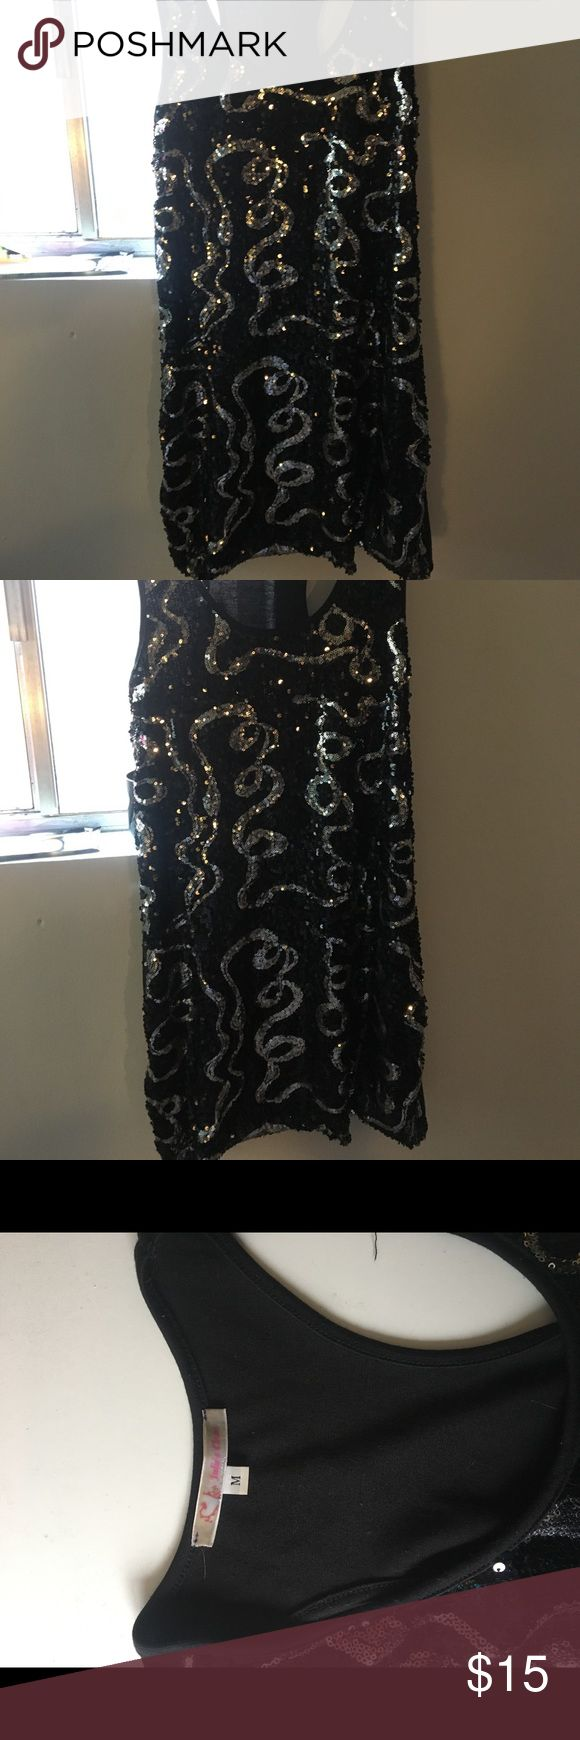 Black and Silver Sequins Dress (for going out) For going out or clubbing, above the knee, strapless Julia's Closet Dresses Midi